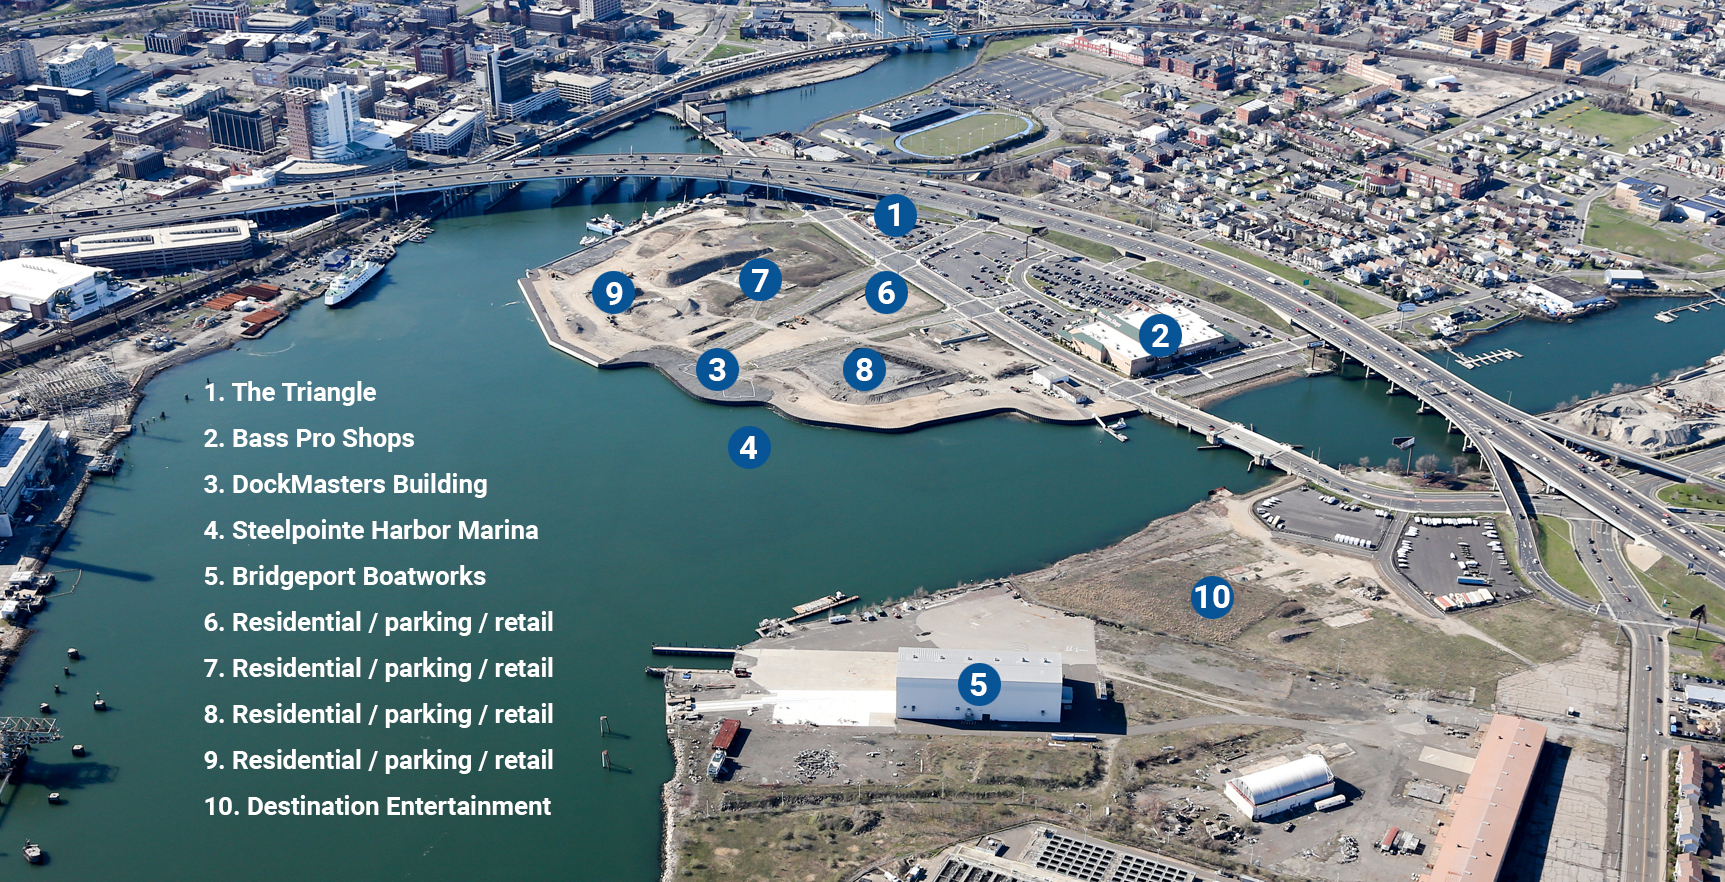 Overview map of Steelpointe and Bridgeport Boatworks